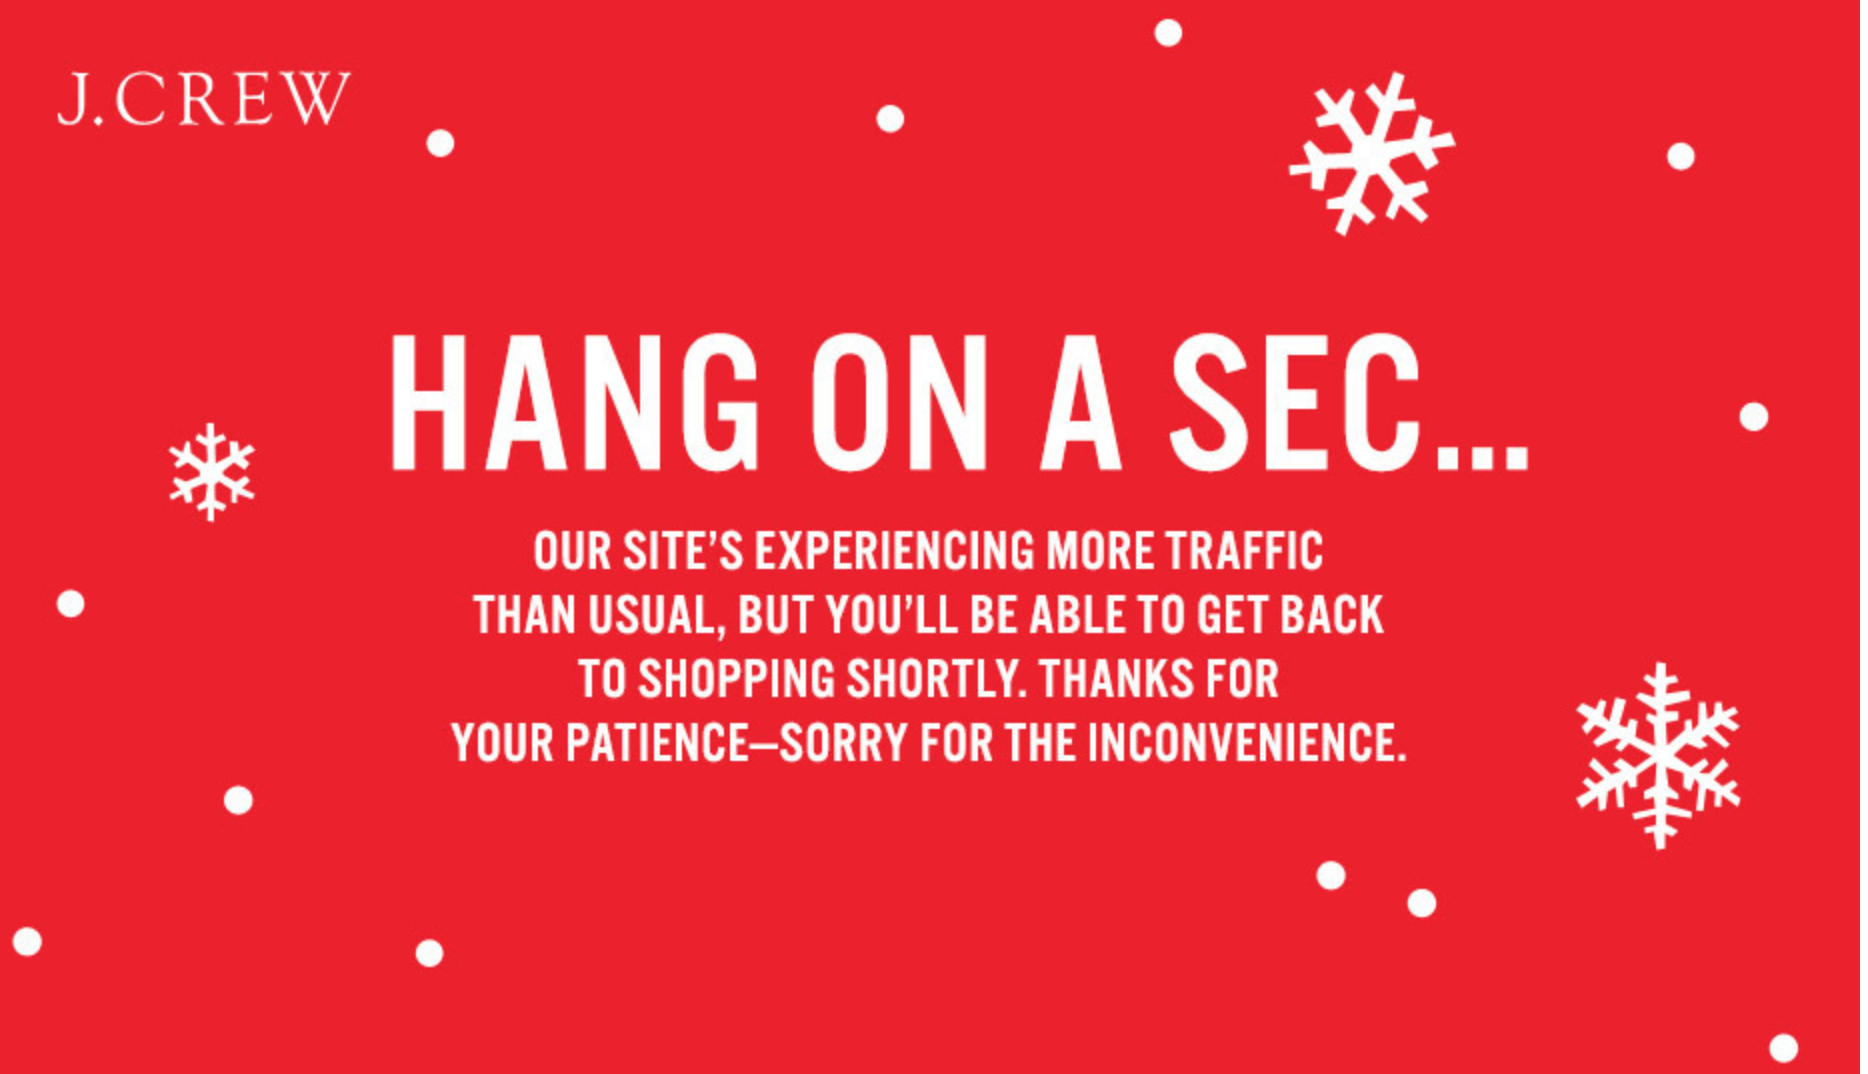 On Friday 11/23/18, J. Crew's website started malfunctioning in the first hours of their 50% off sale. Eventually, their team put up this error message on the site.